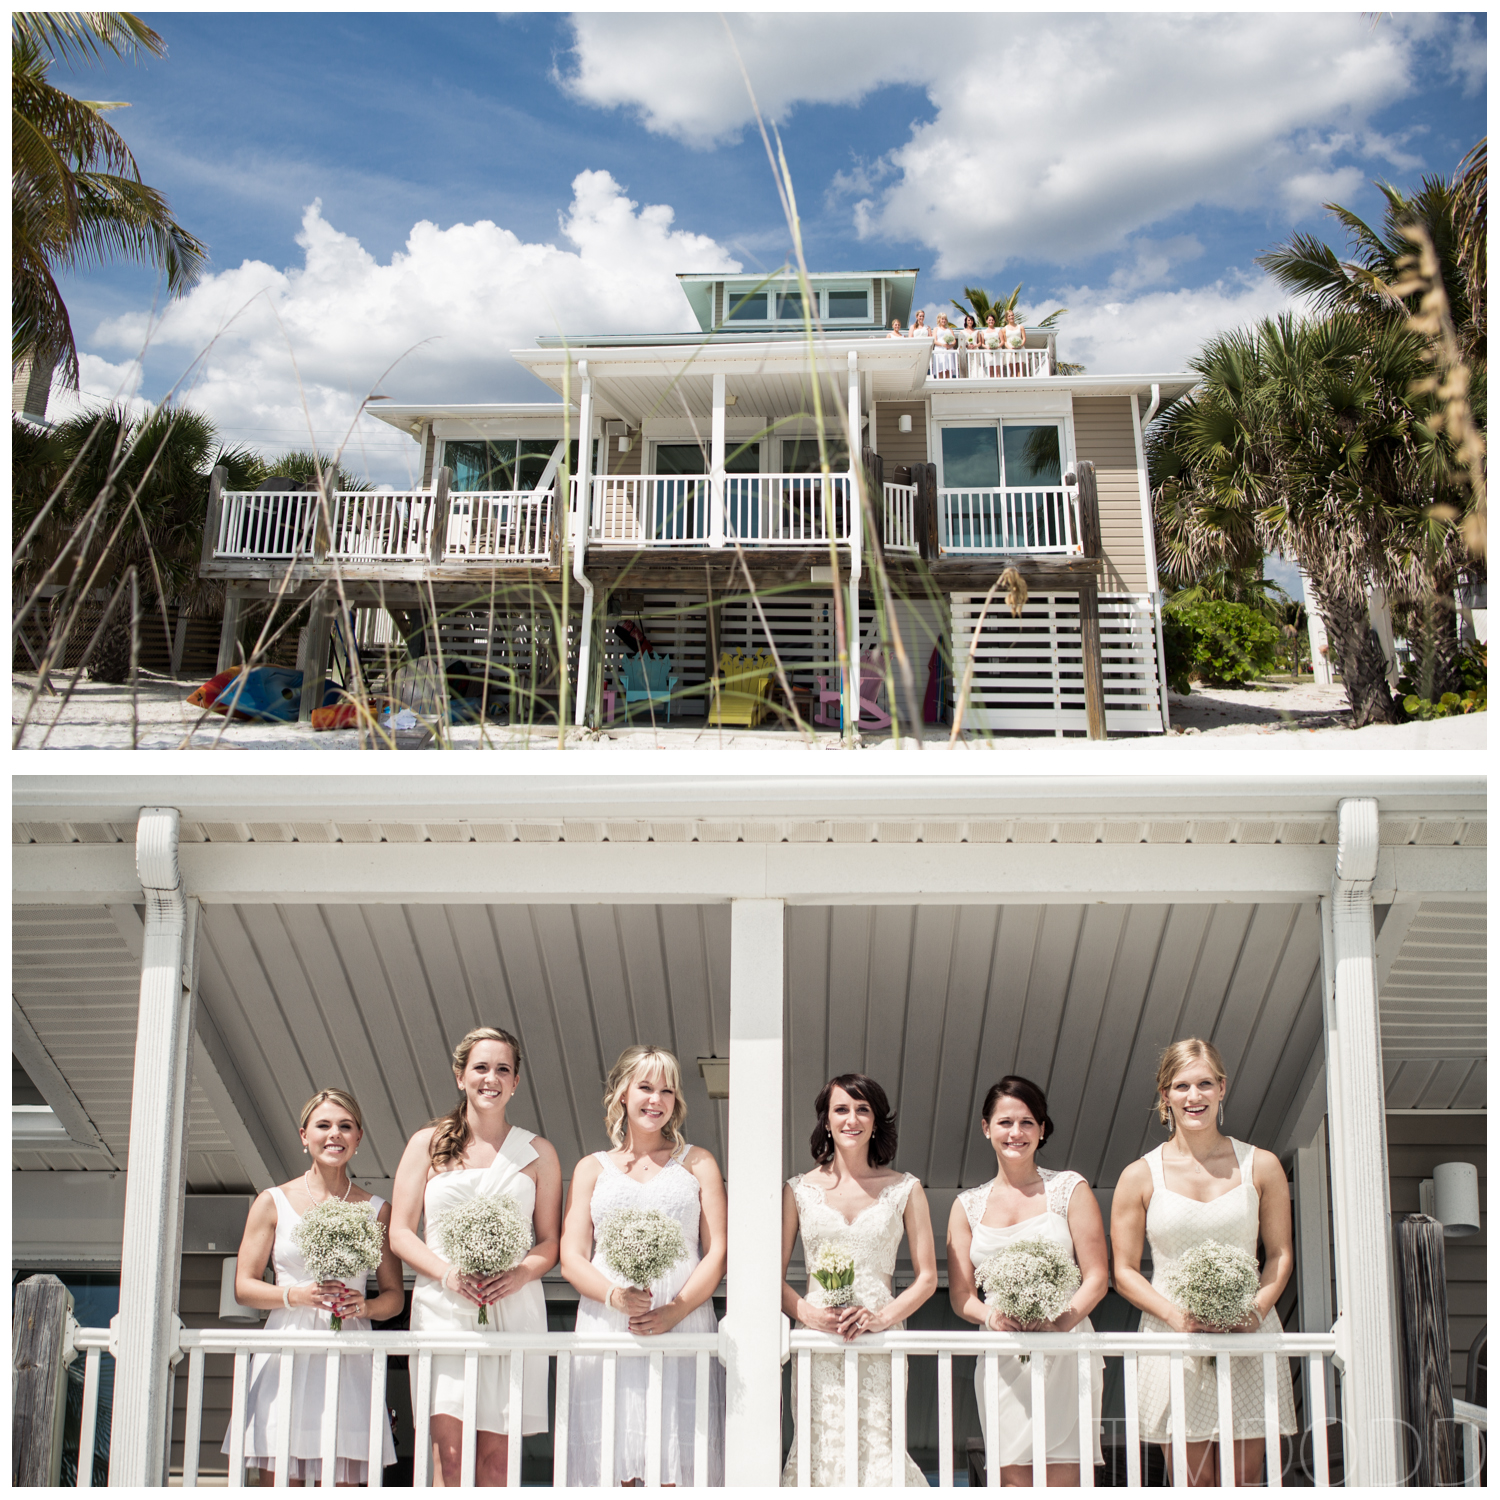 Florida Beach House Weddings: Tim Dodd Photography